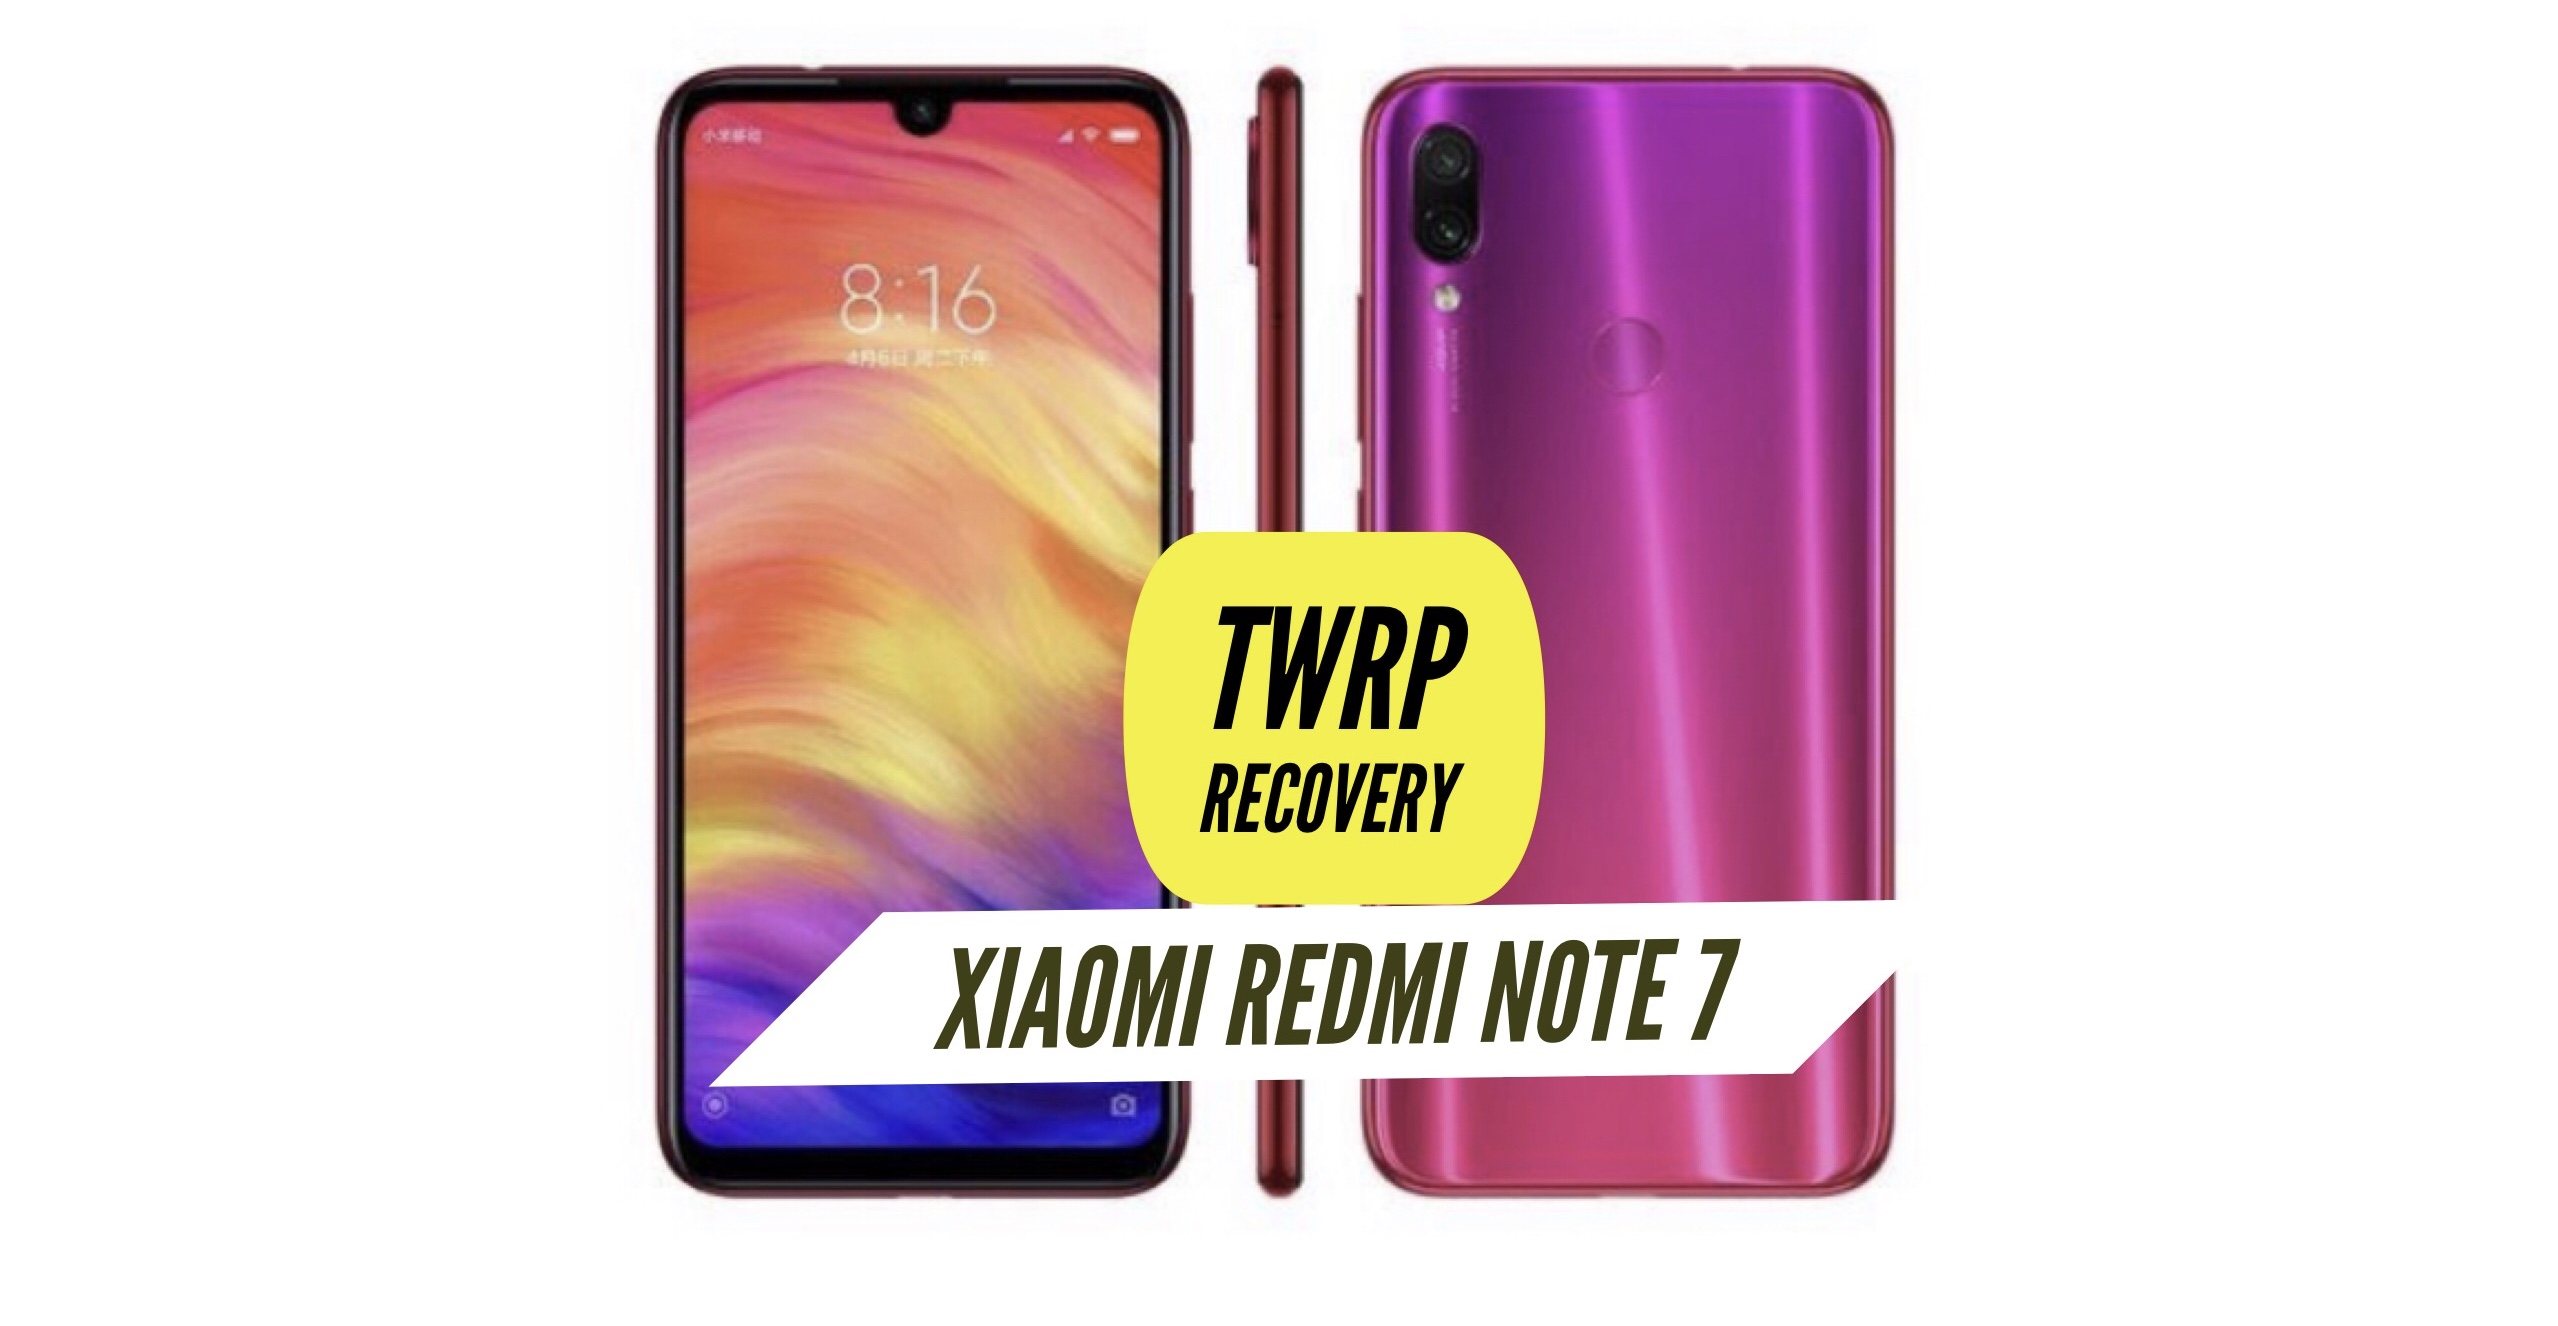 How to Install TWRP Recovery on Xiaomi Redmi Note 7